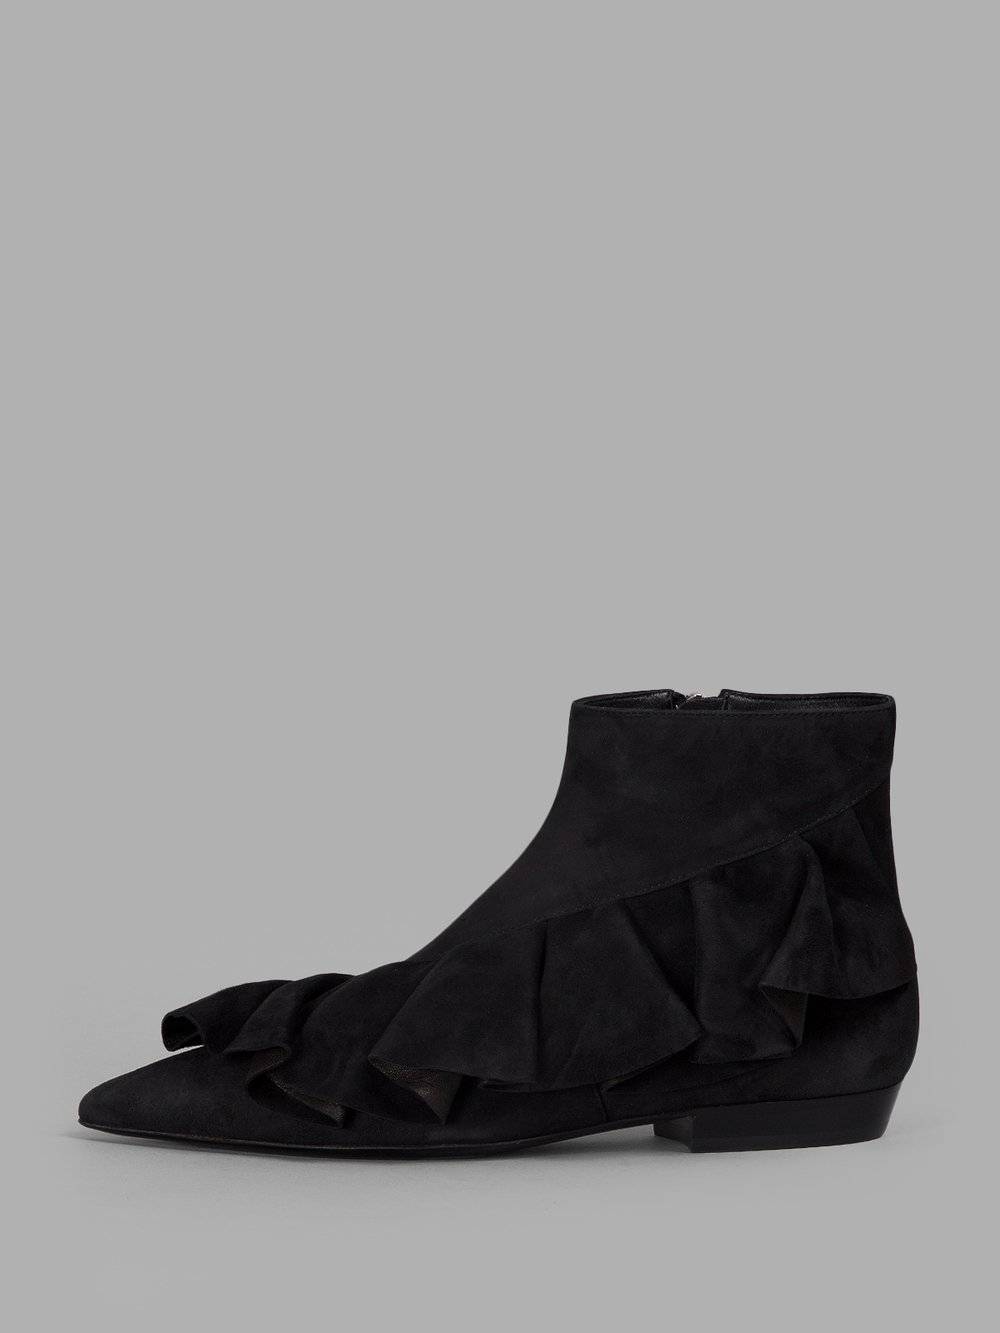 J.W. ANDERSON WOMEN'S  BLACK SUEDE ANKLE BOOTS